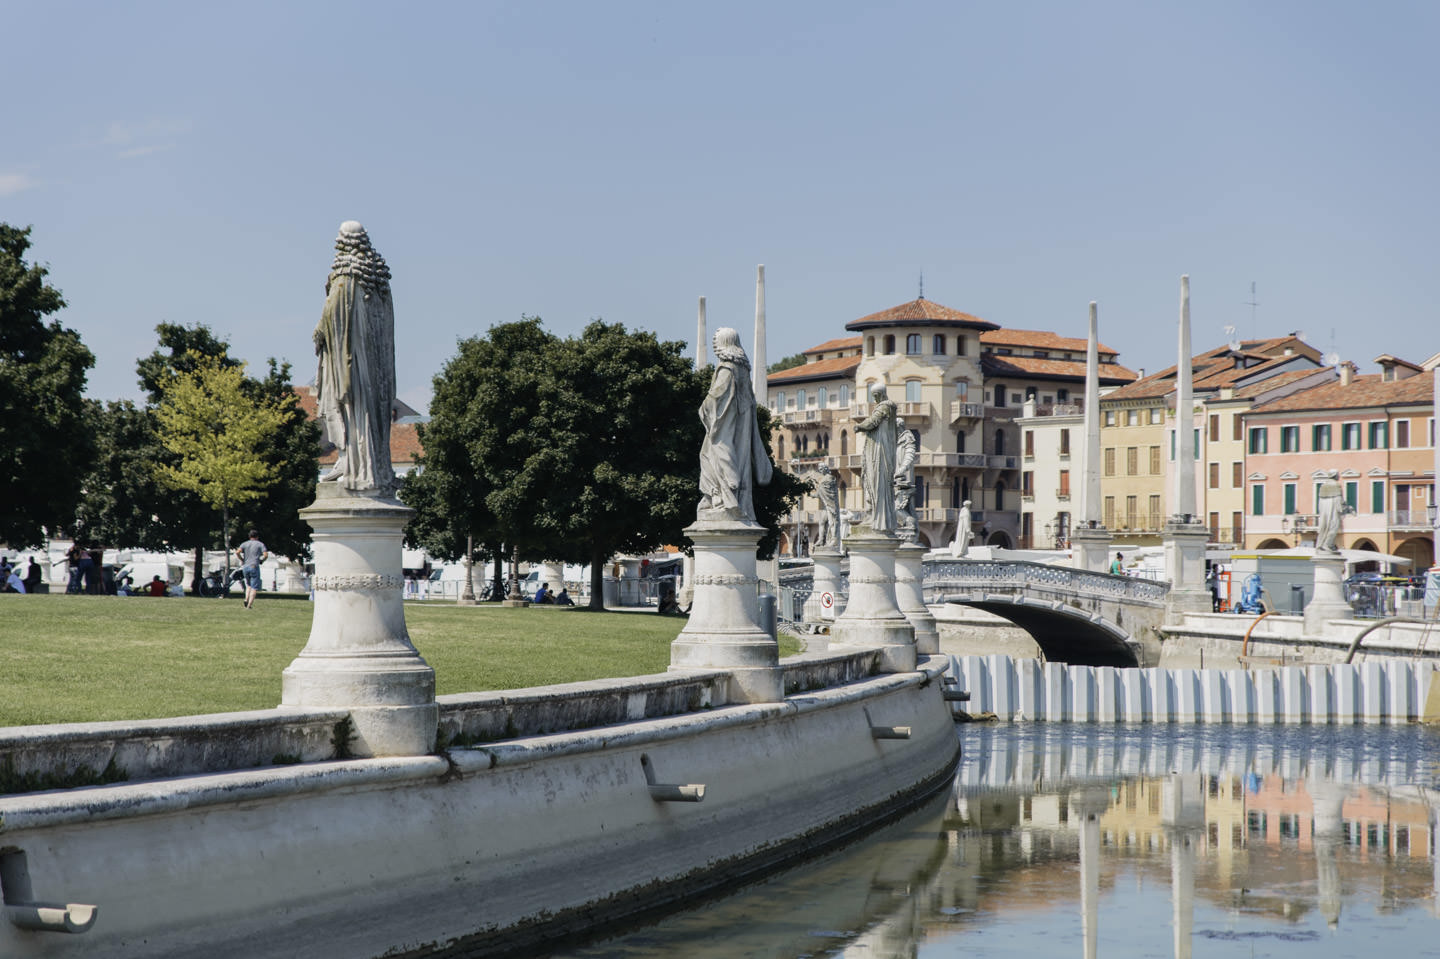 Blog-Mode-And-The-City-Lifestyle-Voyage-Italie-Trieste-Padoue-lac-Come-Verone-10